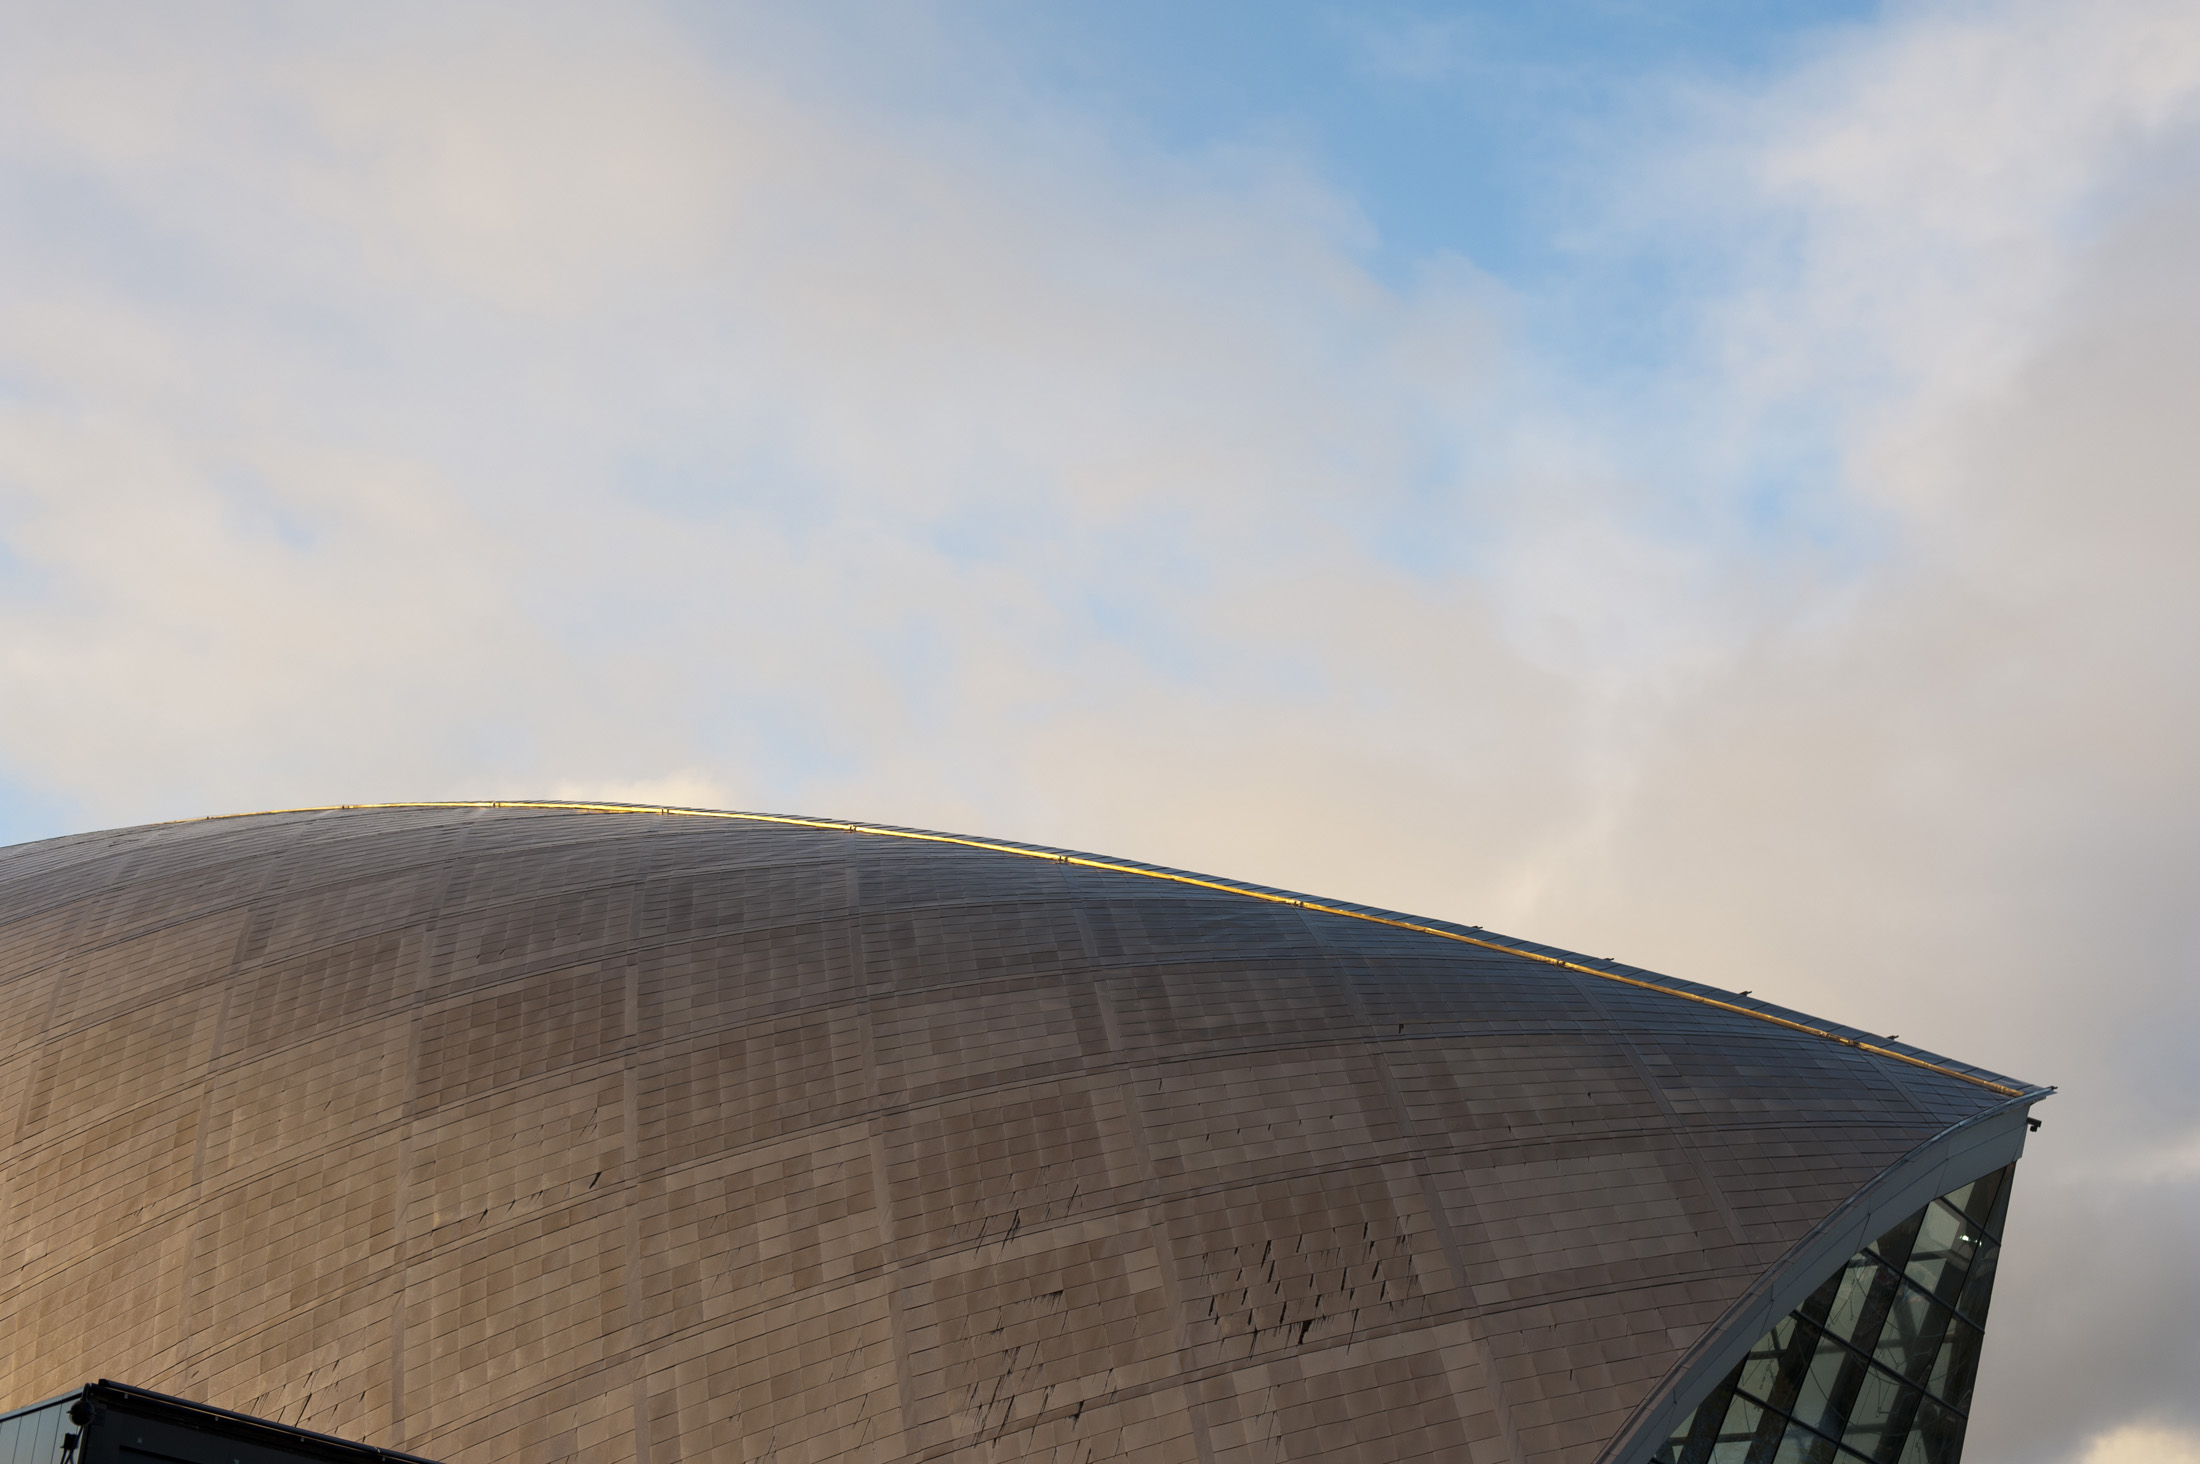 Detail of the architecture of the external facade of the Glasgow Science Centre with its distinctive domed metal structure against a blue sky